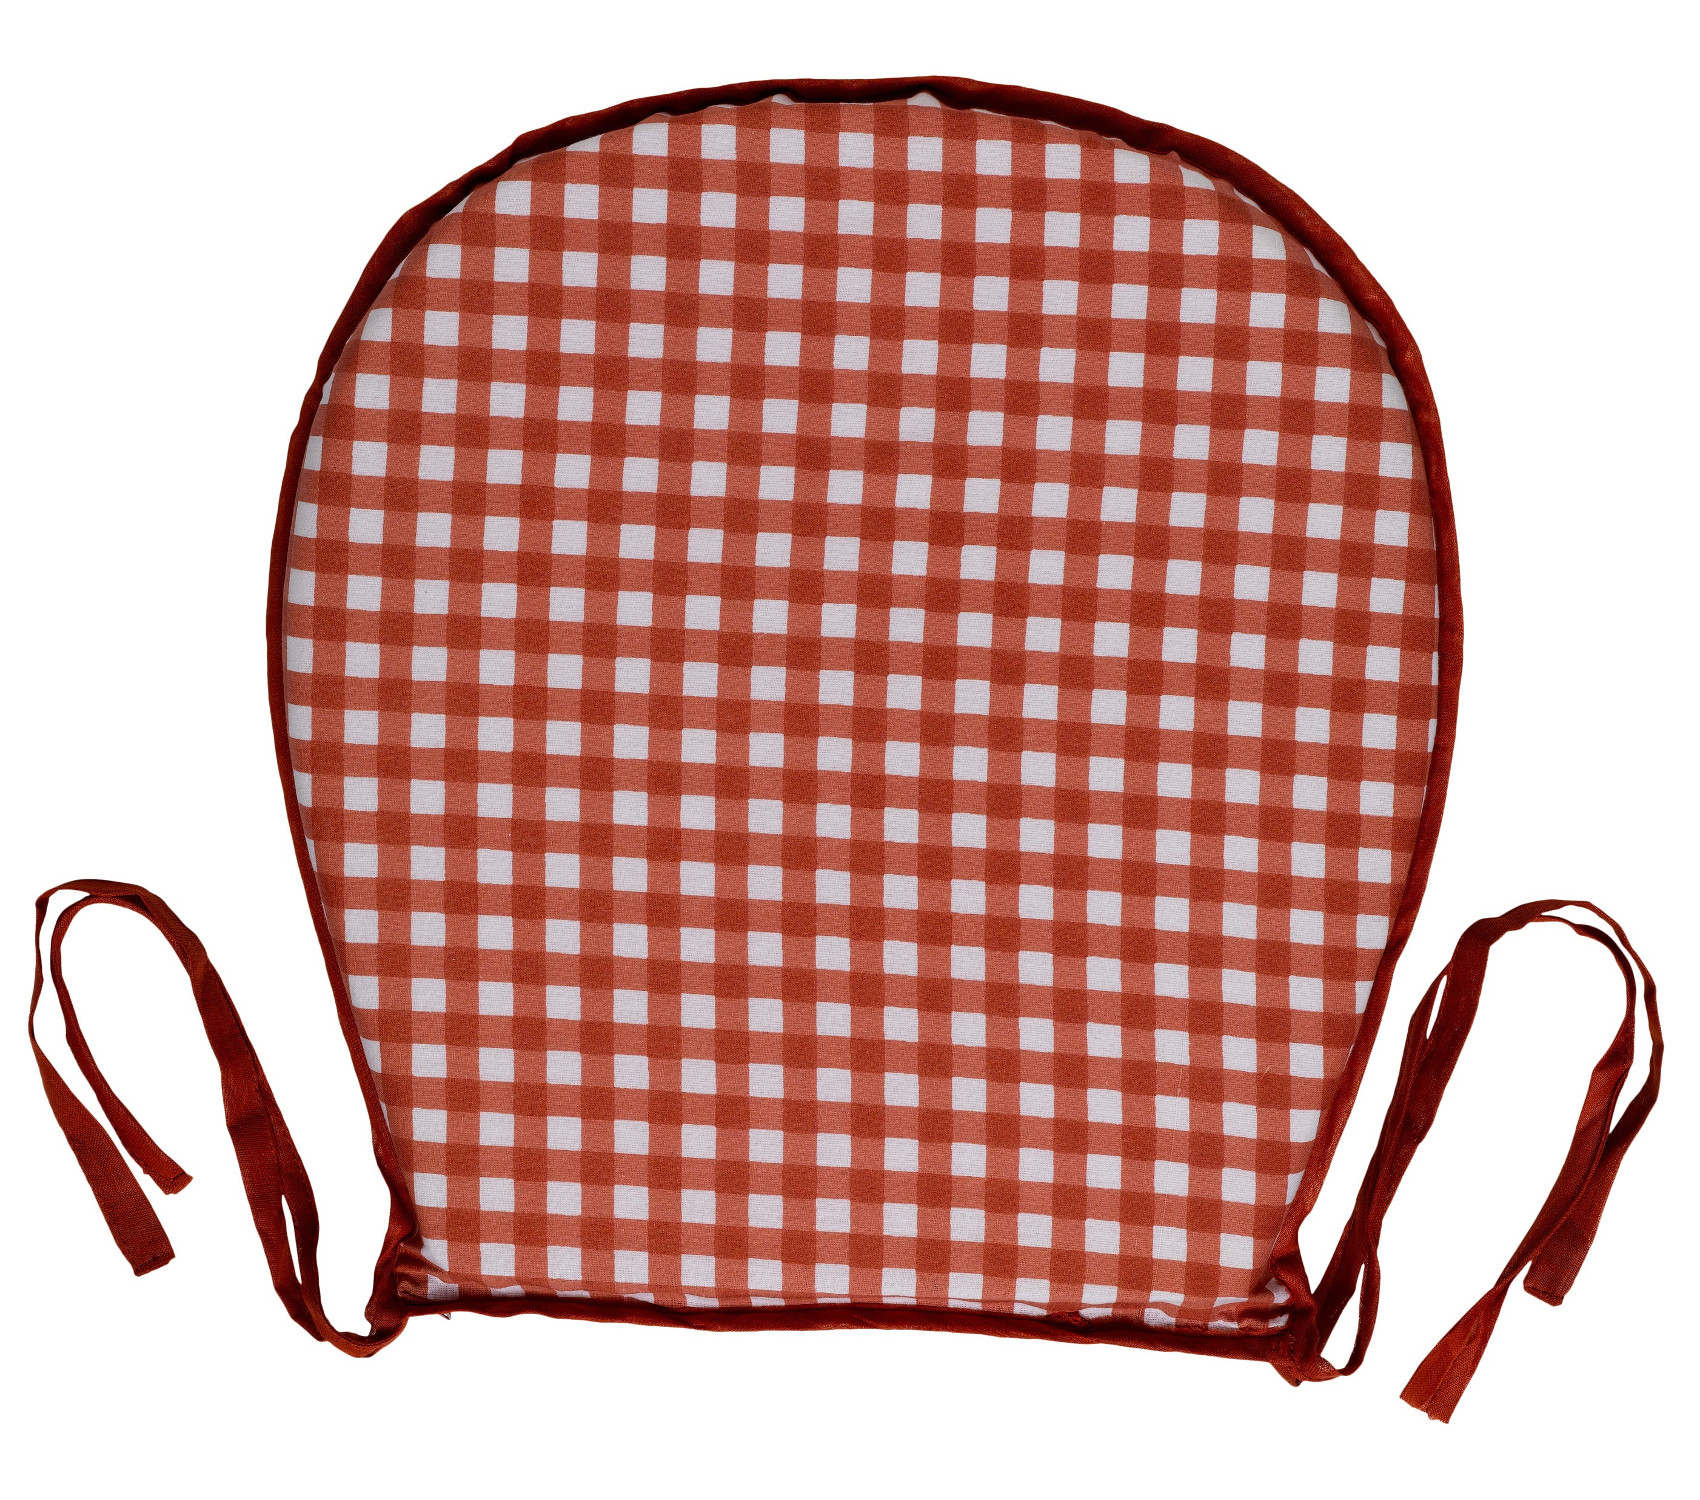 gingham dining room chair covers revolving daraz garden seat pad 100 cotton check kitchen